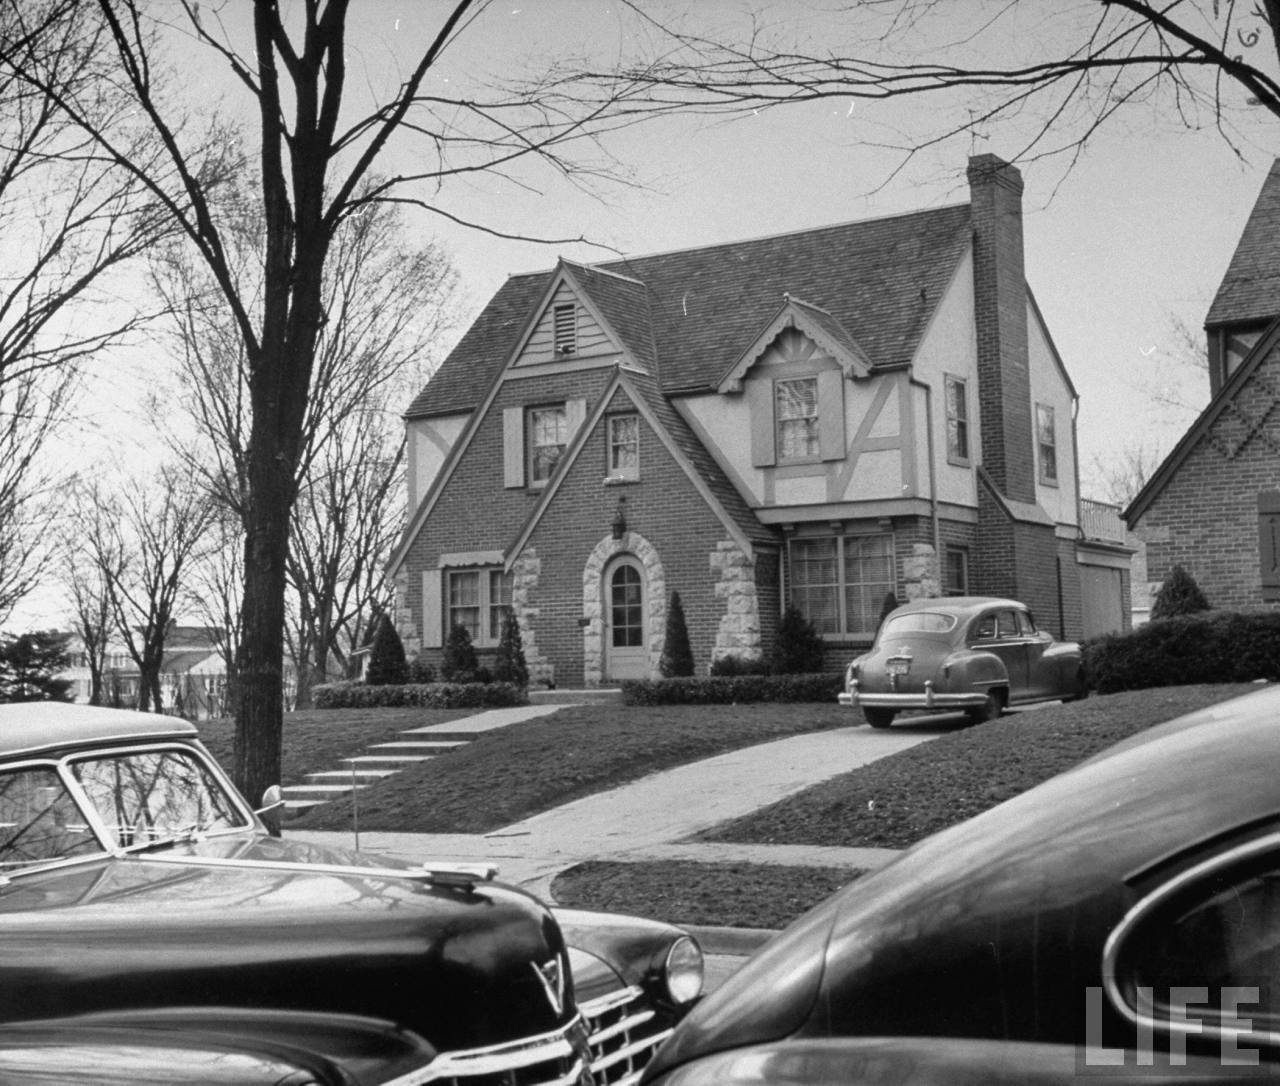 Kansas City politician Charles Binaggios house, where he is a quiet nieghbor and enjoys working in the yard.